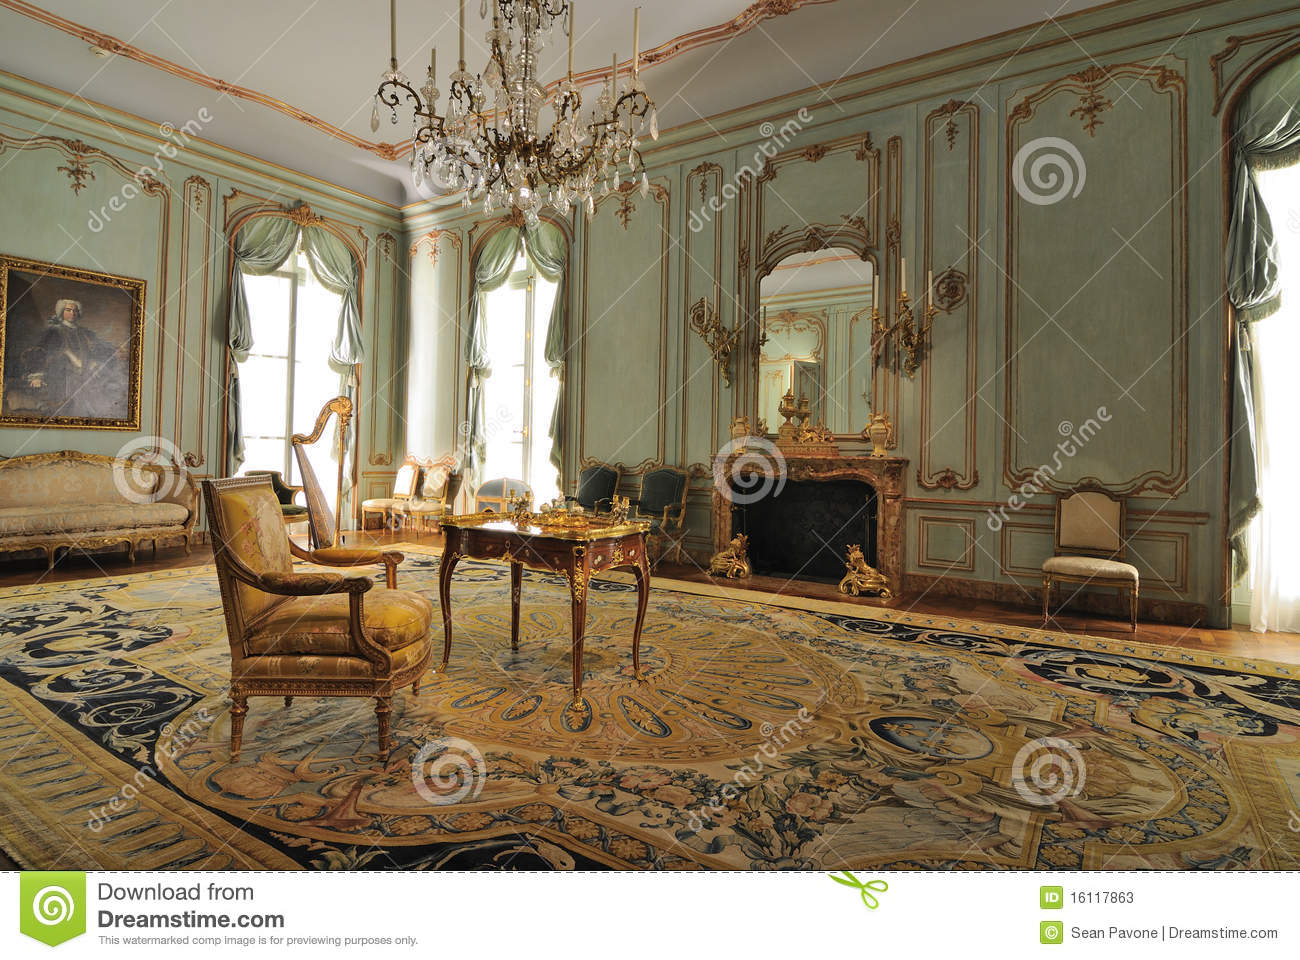 French furniture - Antique French Furniture